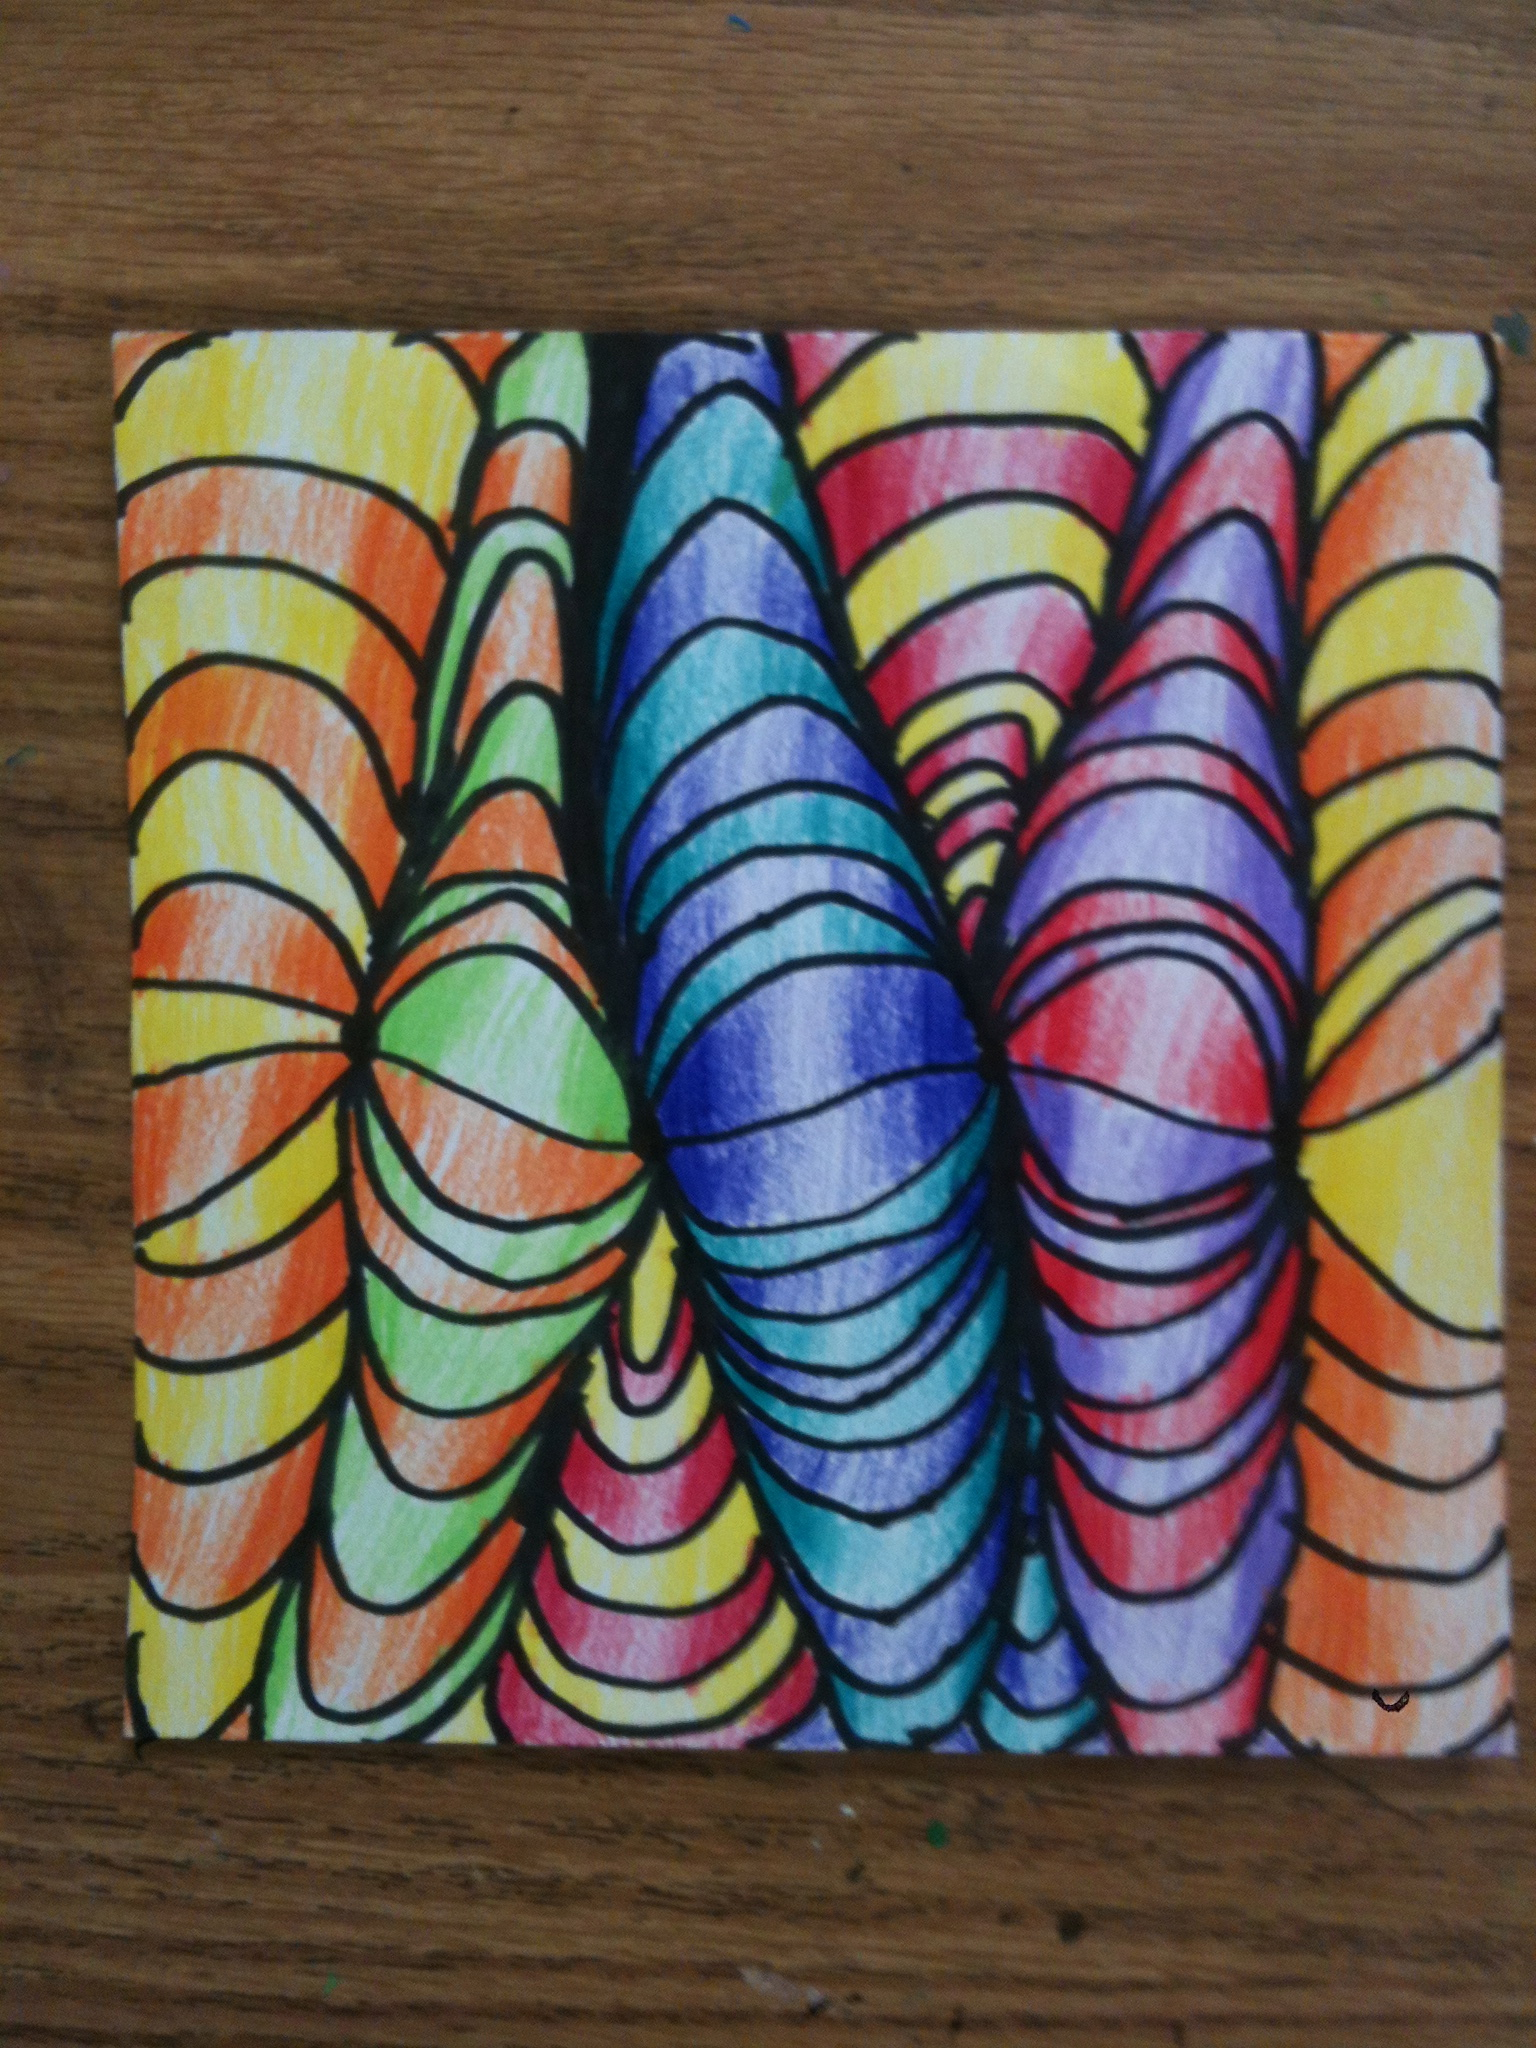 Line Art Projects Middle School : Do the mini op art line shading lesson on a smaller scale